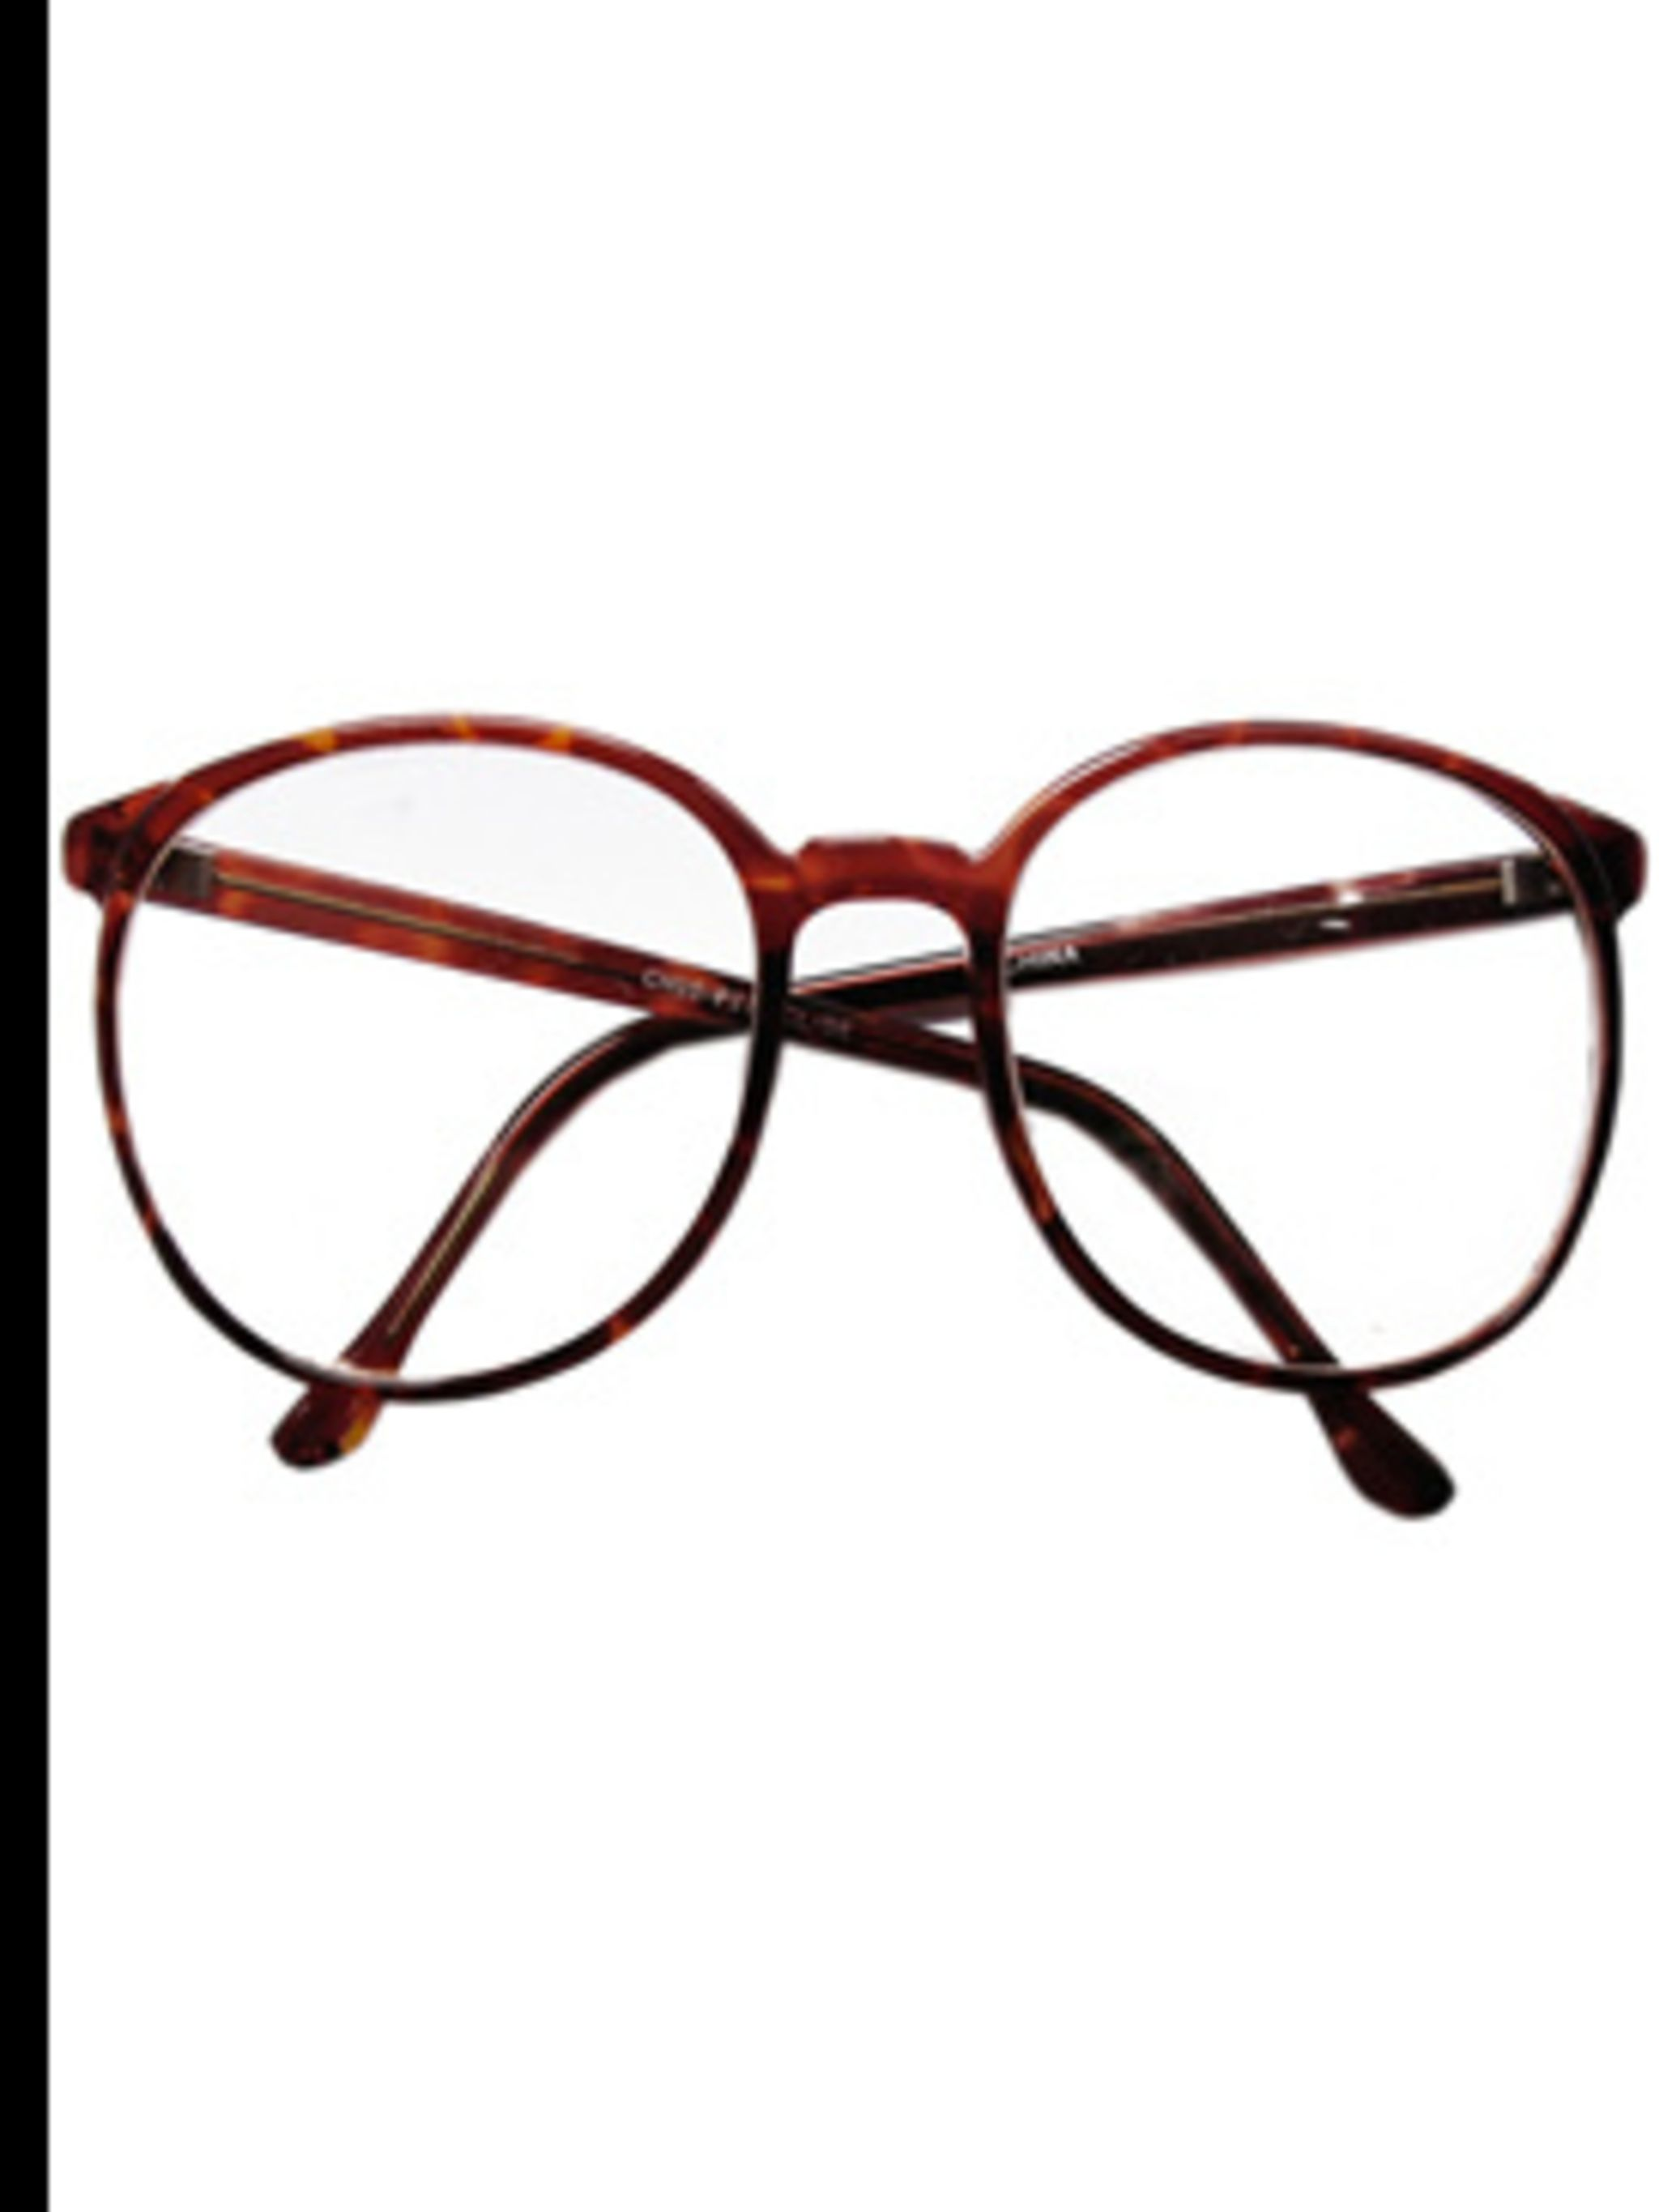 "<p>Tortoise print glasses, £14, by <a href=""http://www.lazyoaf.co.uk/product_info.php?cPath=72_83&products_id=1295"">Lazy Oaf</a></p>"